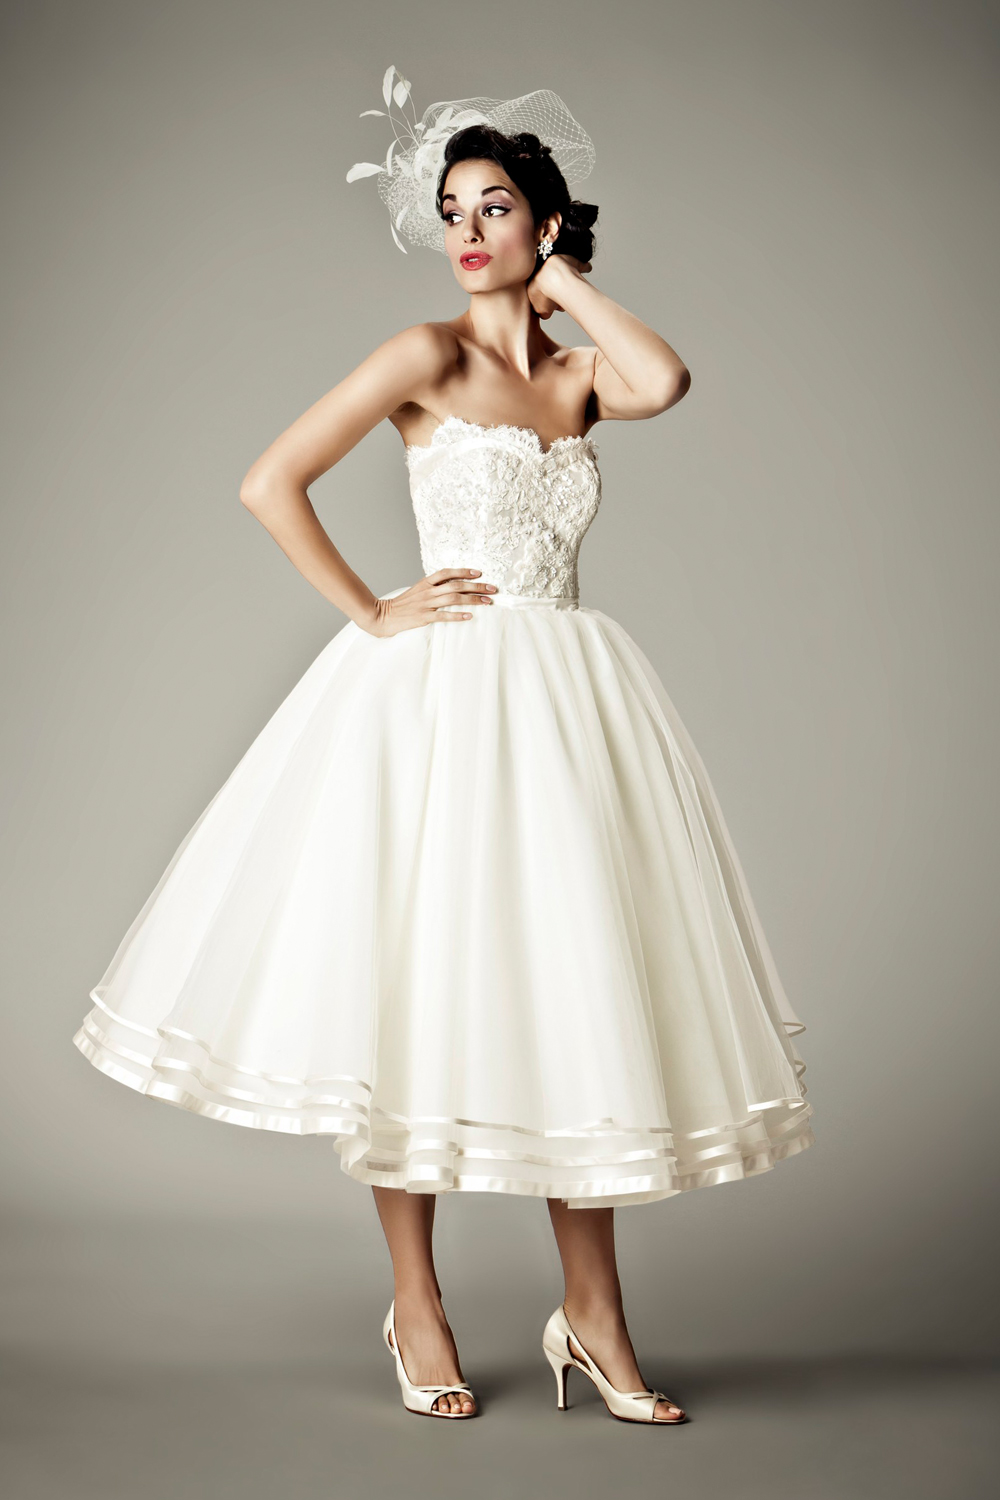 GoS Bridal Trends 2012 - Vintage Inspired Wedding Dresses